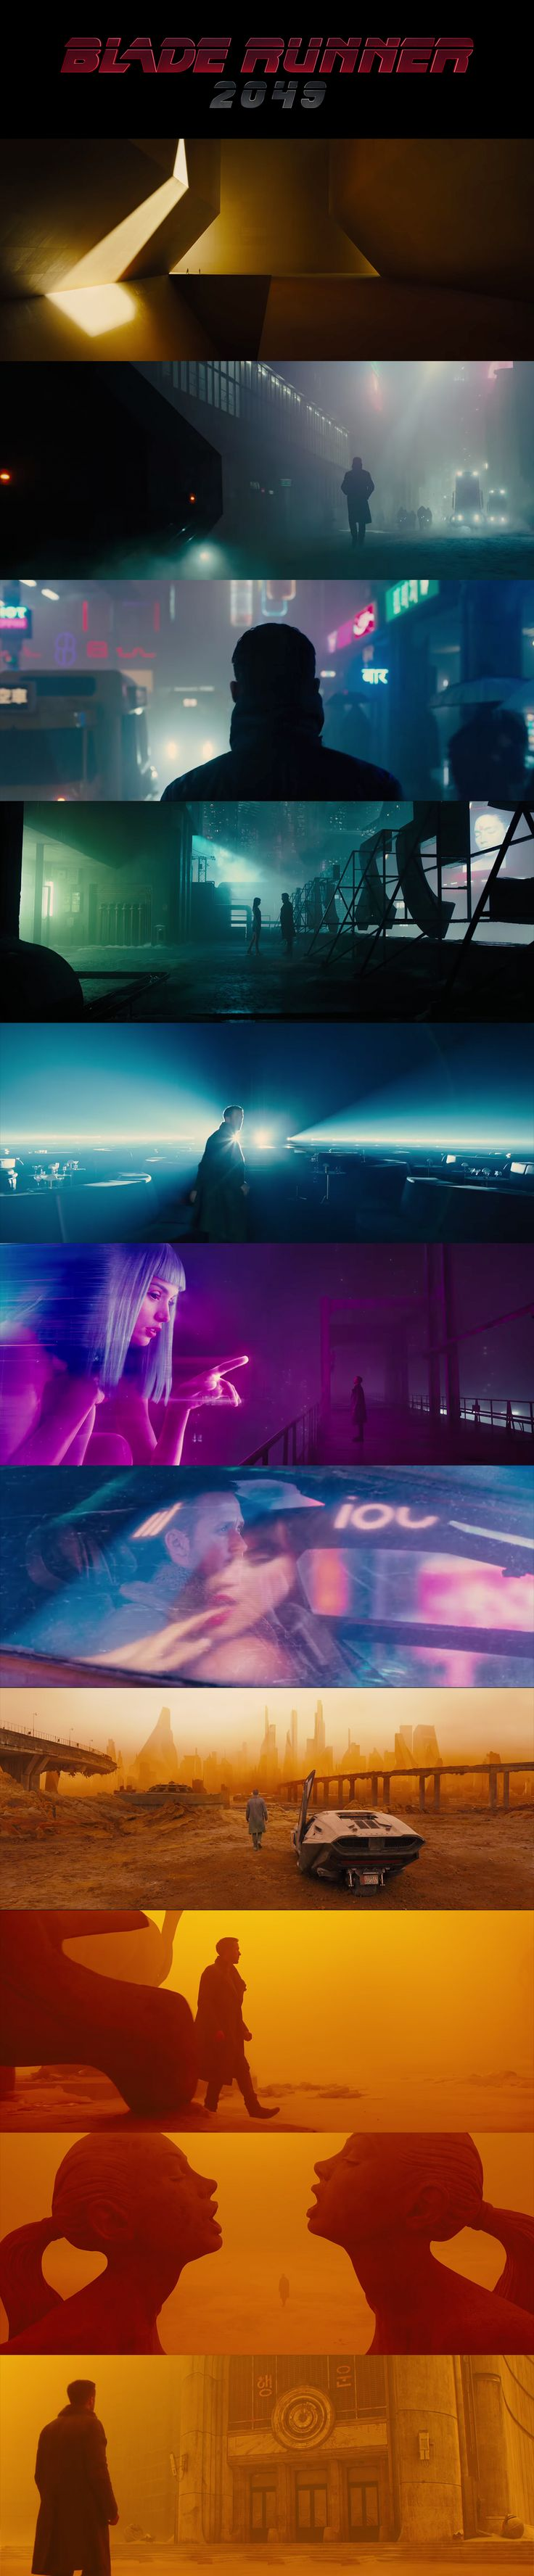 Blade Runner 2049 amazing palette color